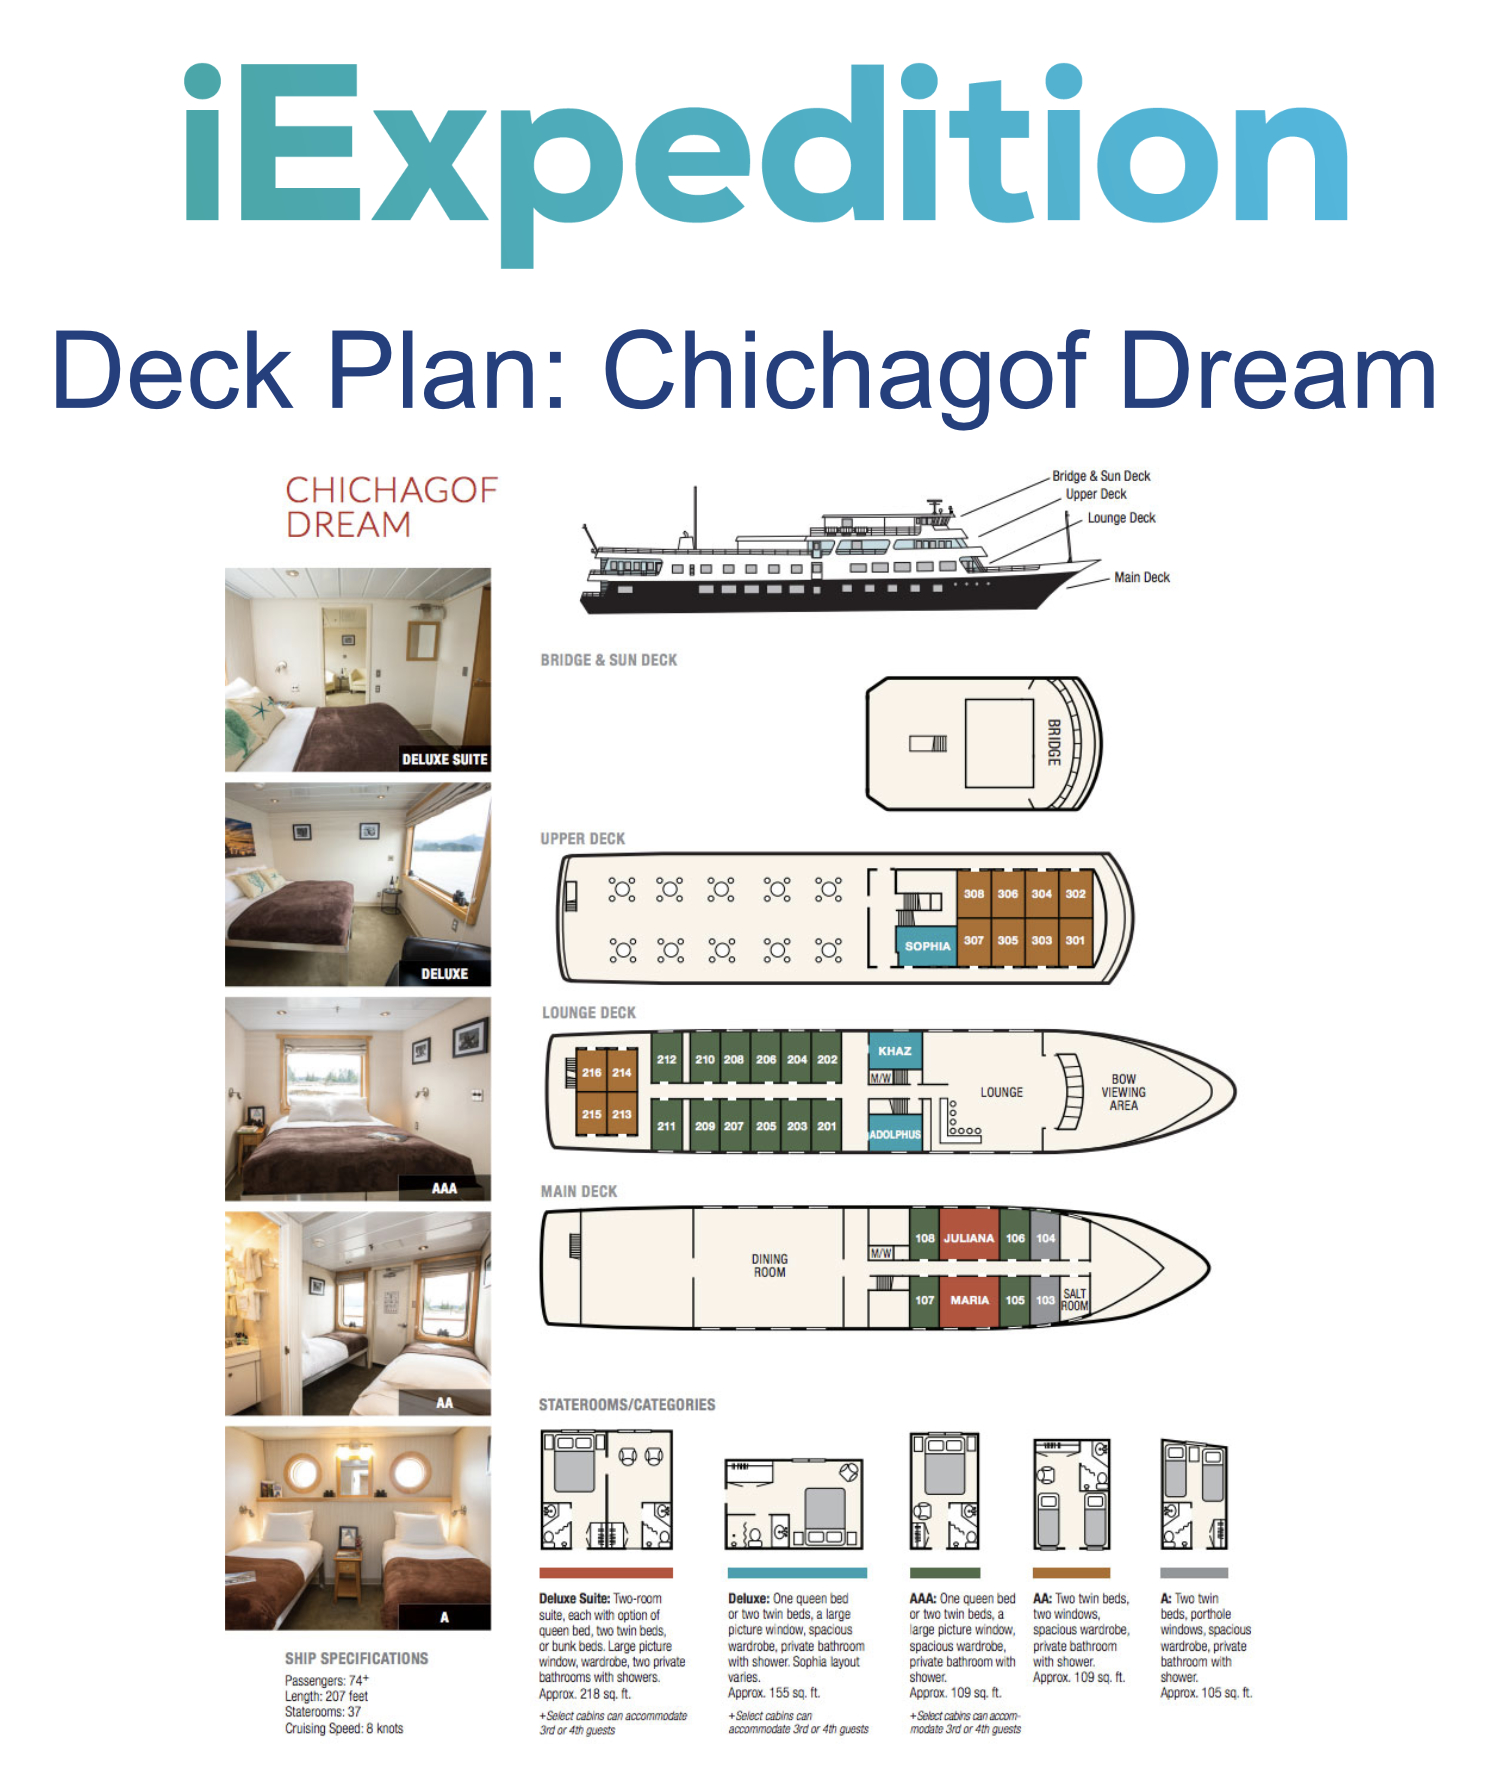 Chichagof dream deck plan